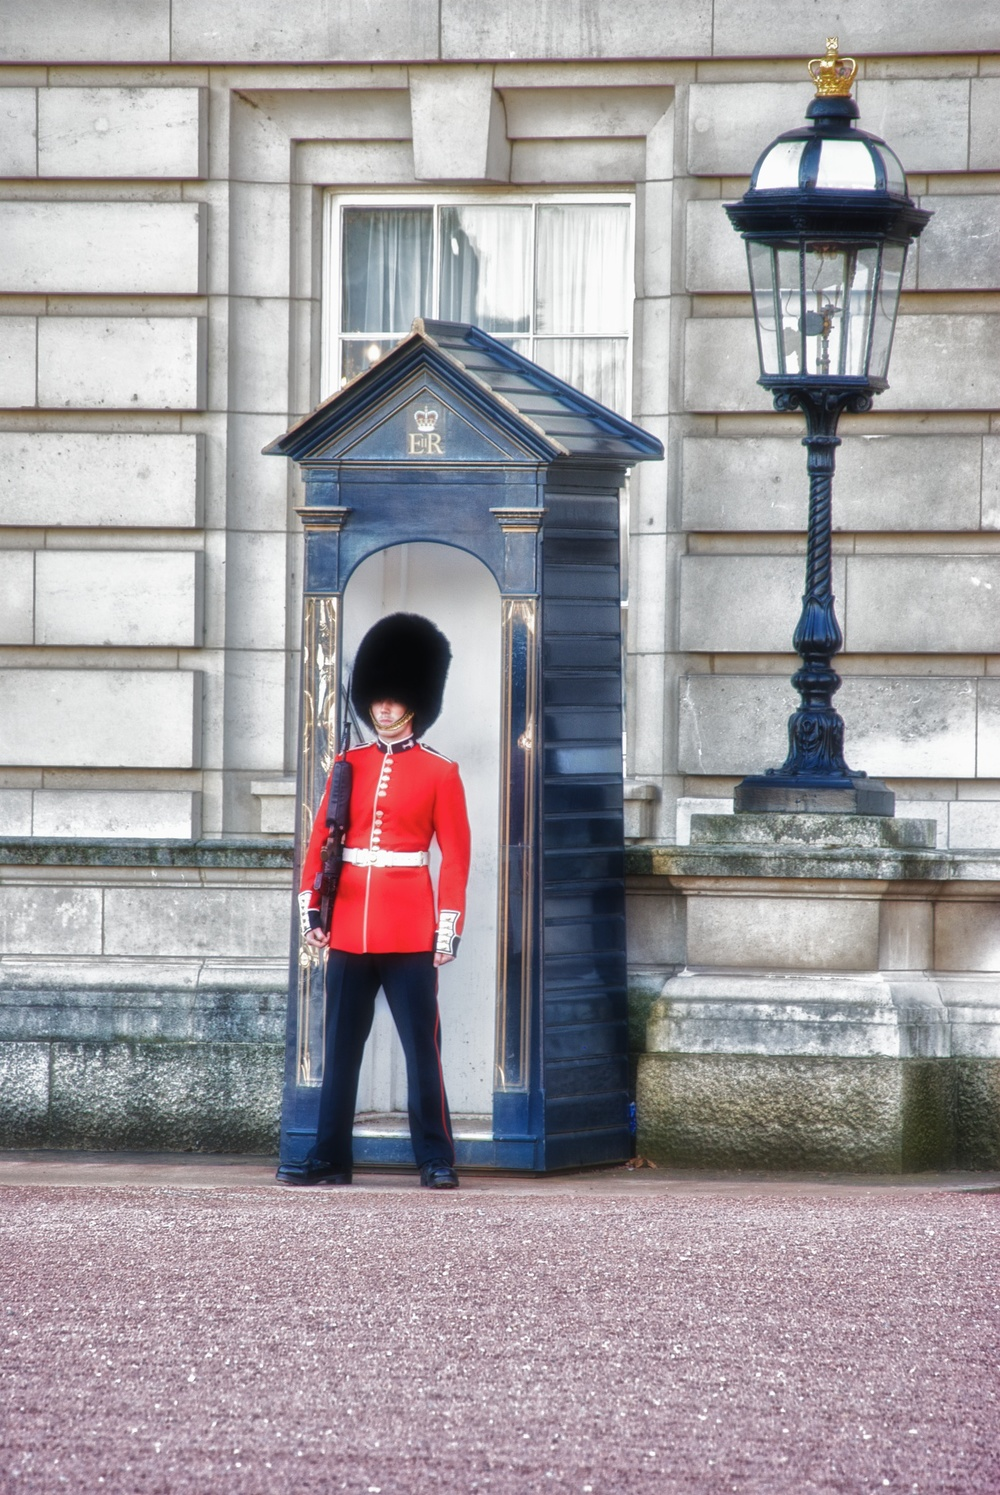 A guard at Buckingham Palace.jpg